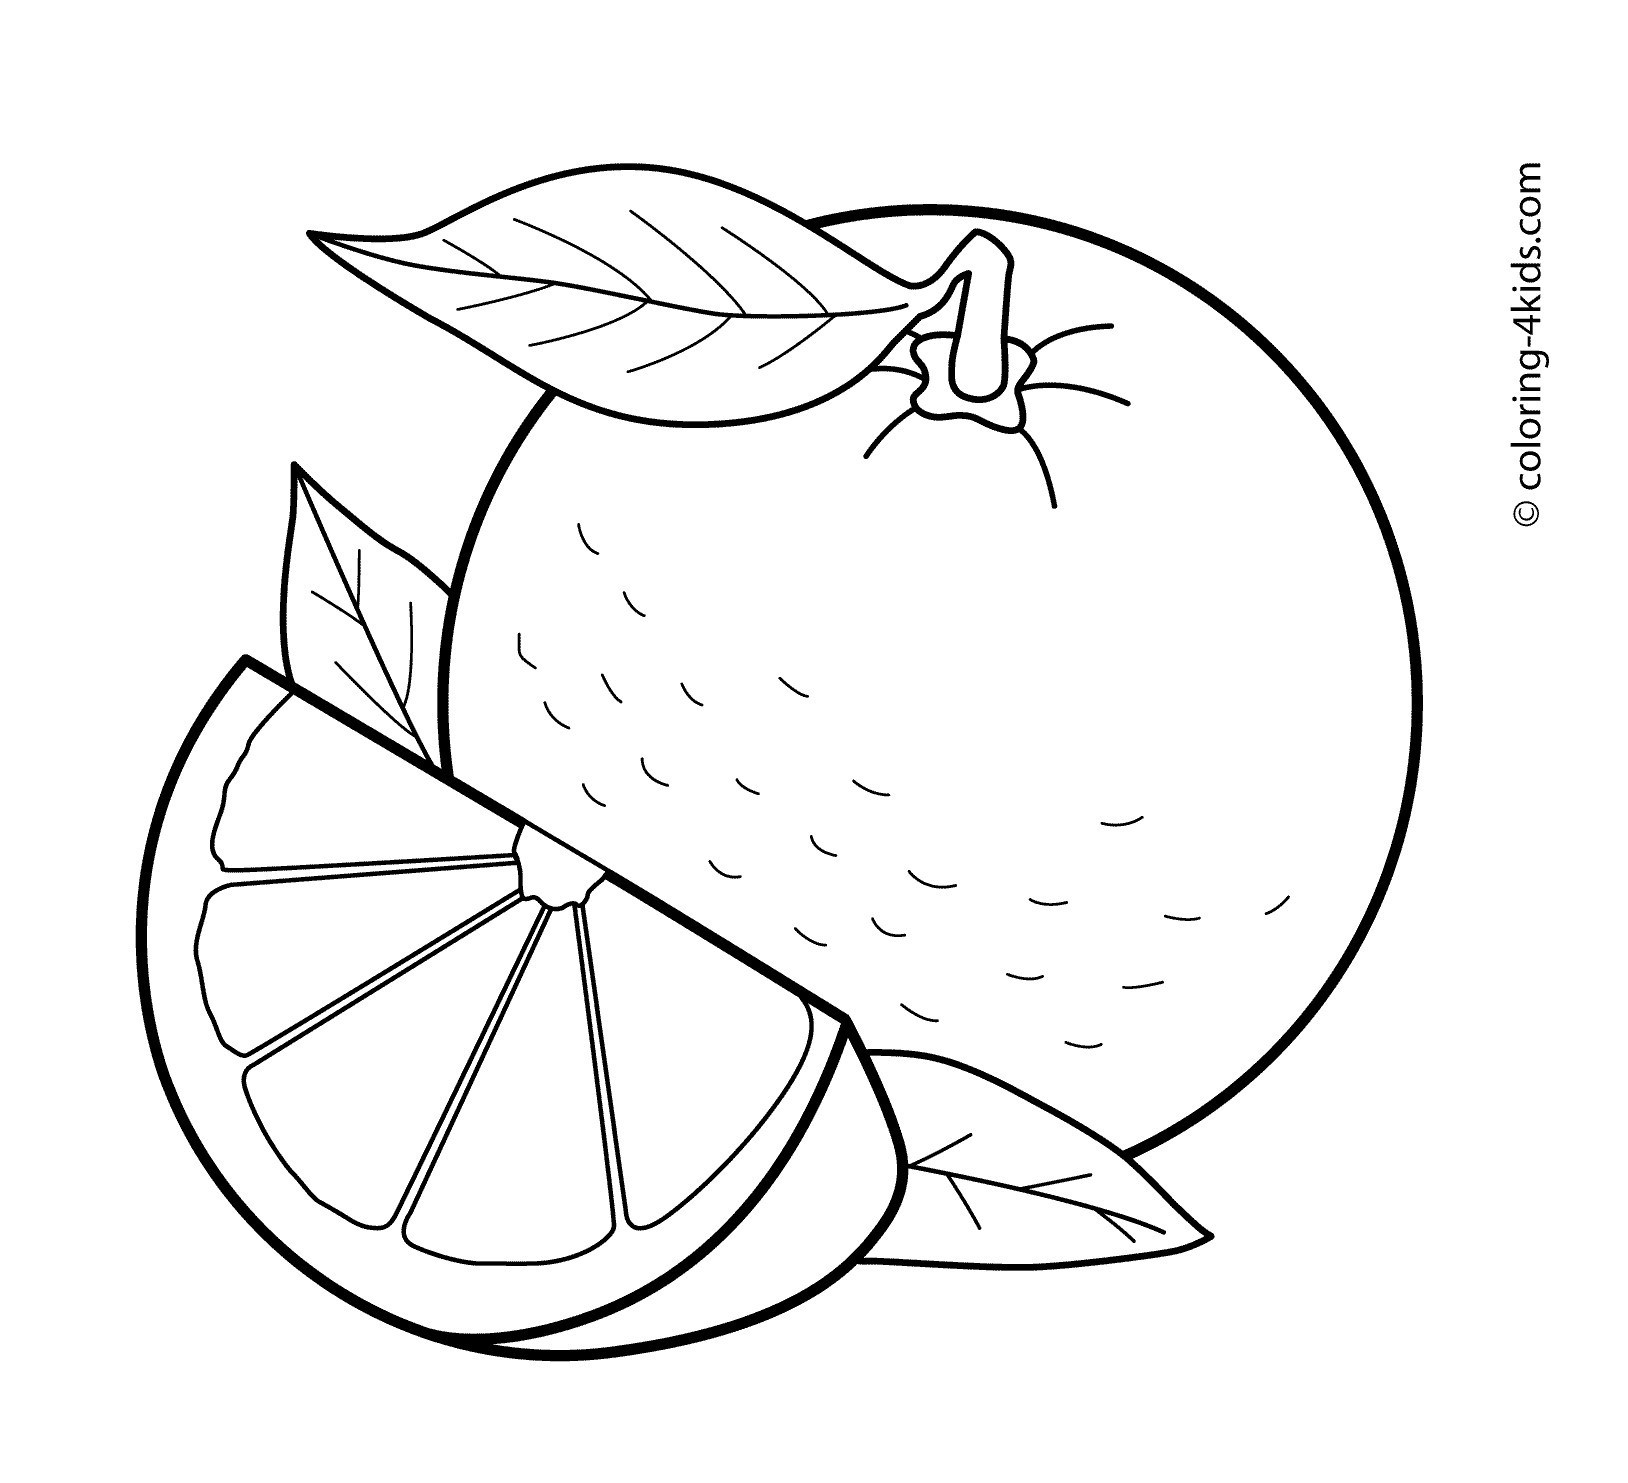 Orange Fruit Clipart Black And White 1 Clipart Station